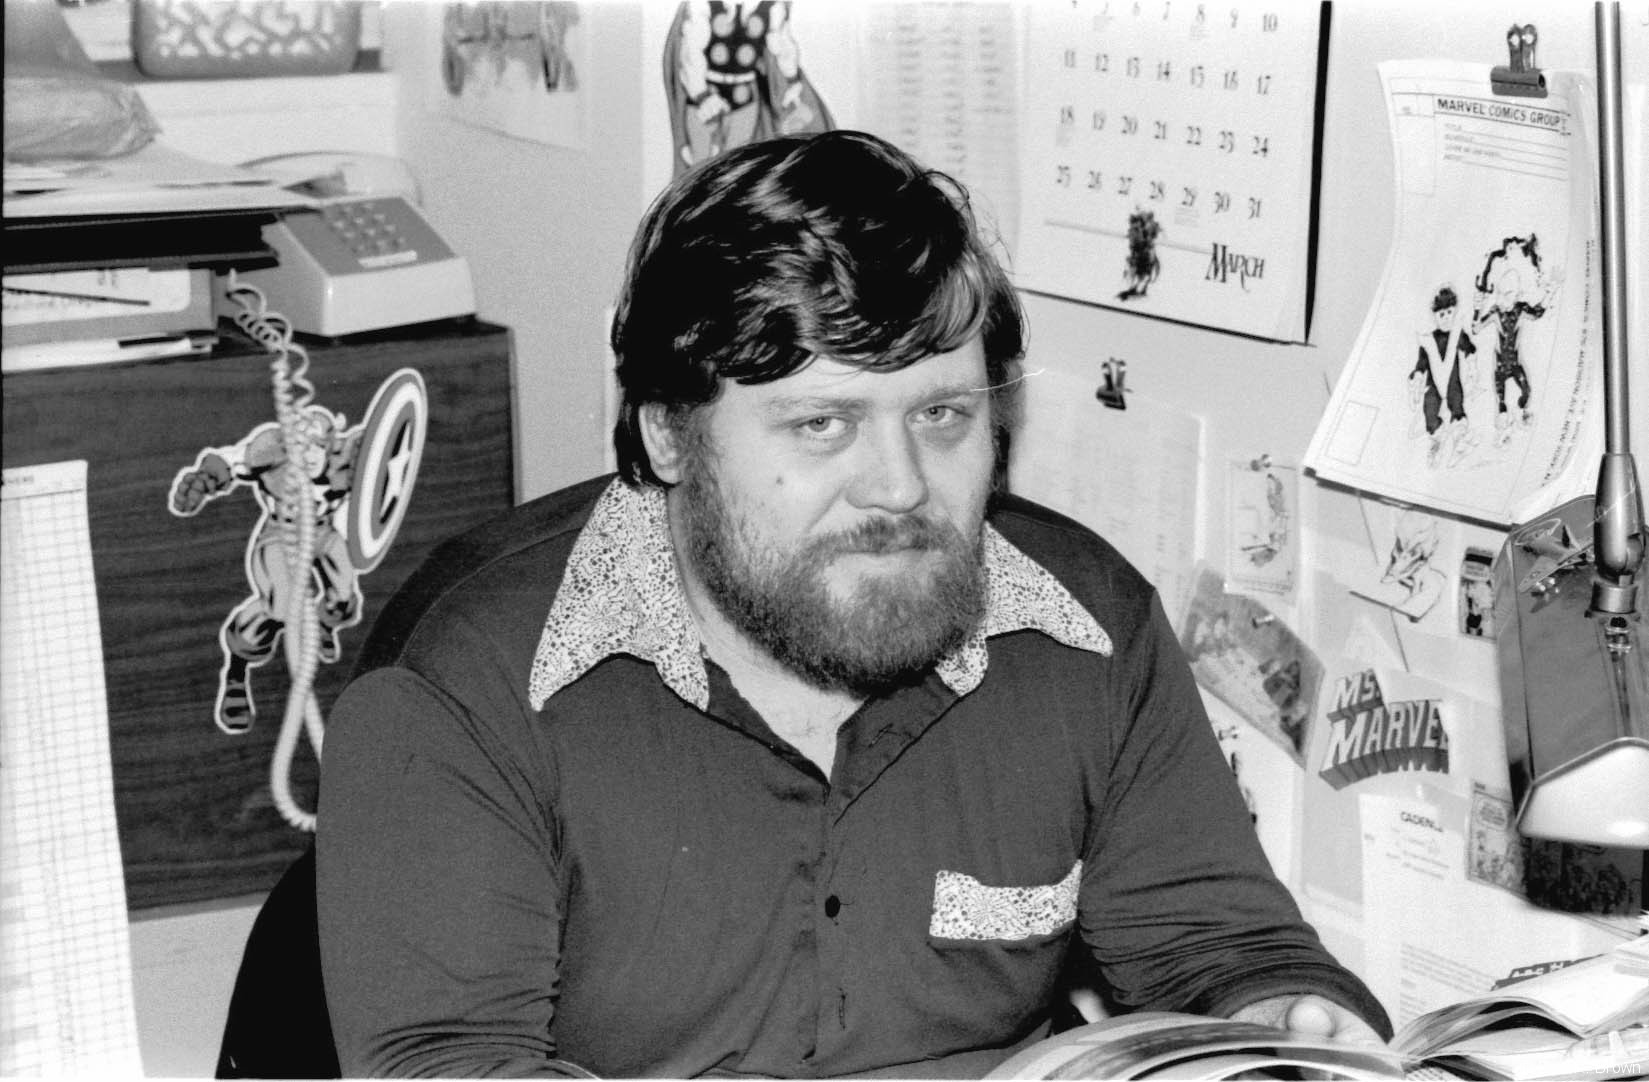 Dave Cockrum, penciler, inker. He was the on-staff art correction person. Truly one of the nicest guys in the business.